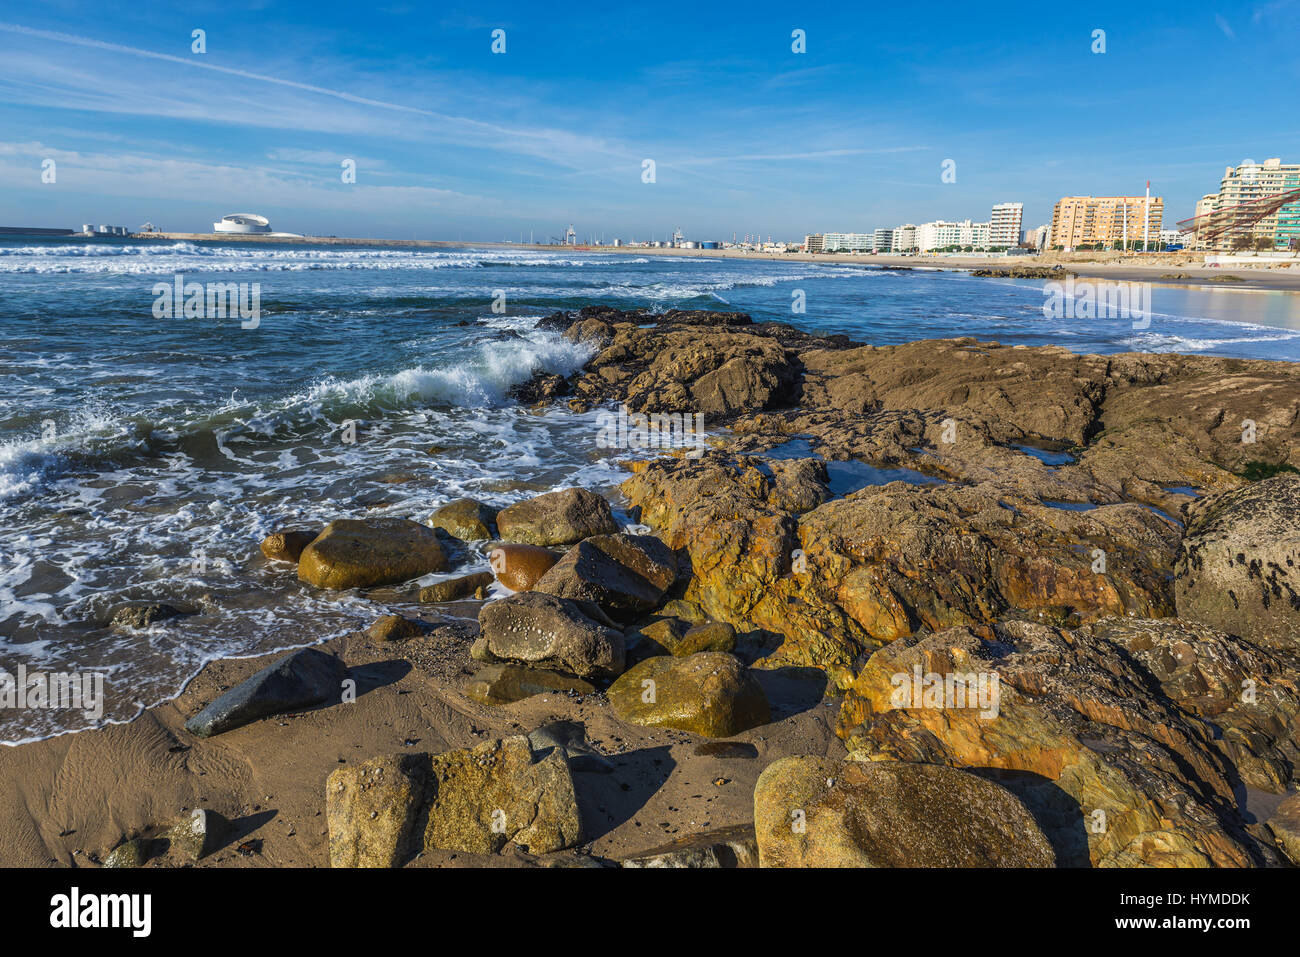 Rocky shore of Nevogilde civil parish of Porto, second largest city in Portugal. Port of Leixoes Cruise Terminal Stock Photo